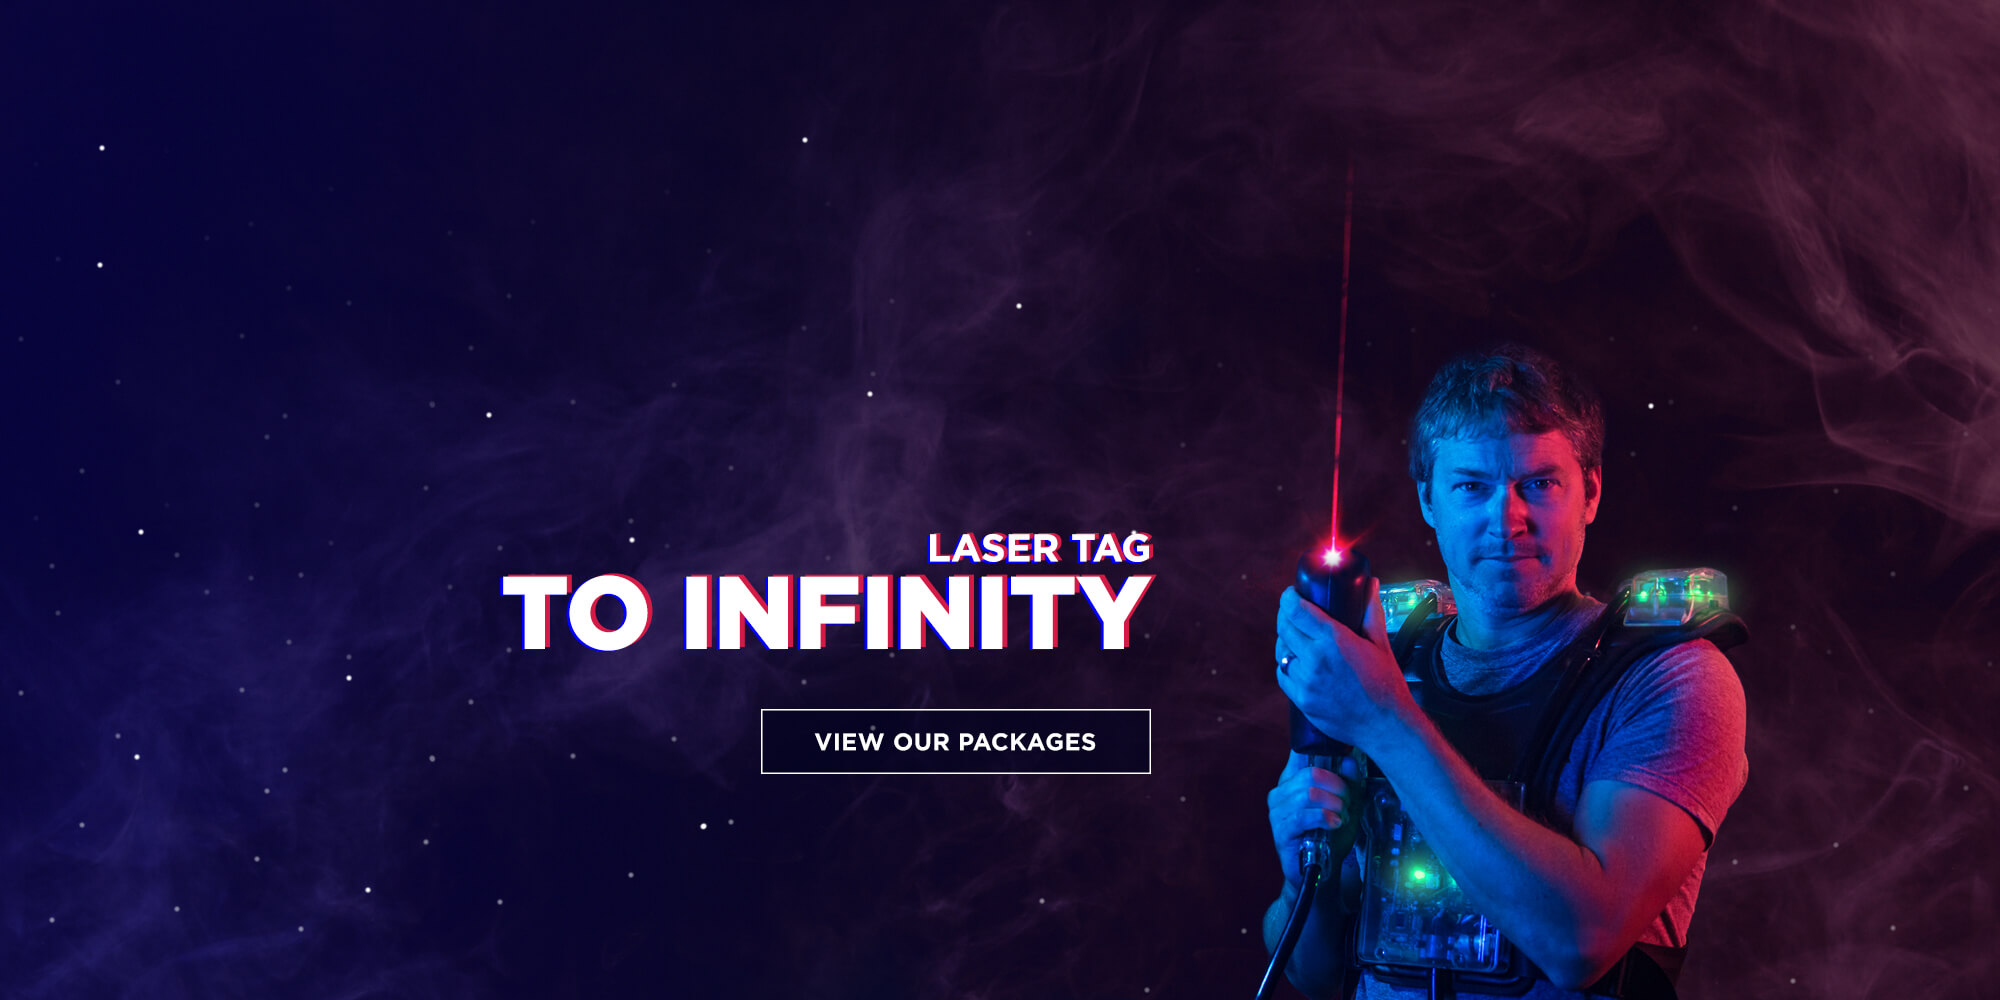 Man with a laser tag equipment